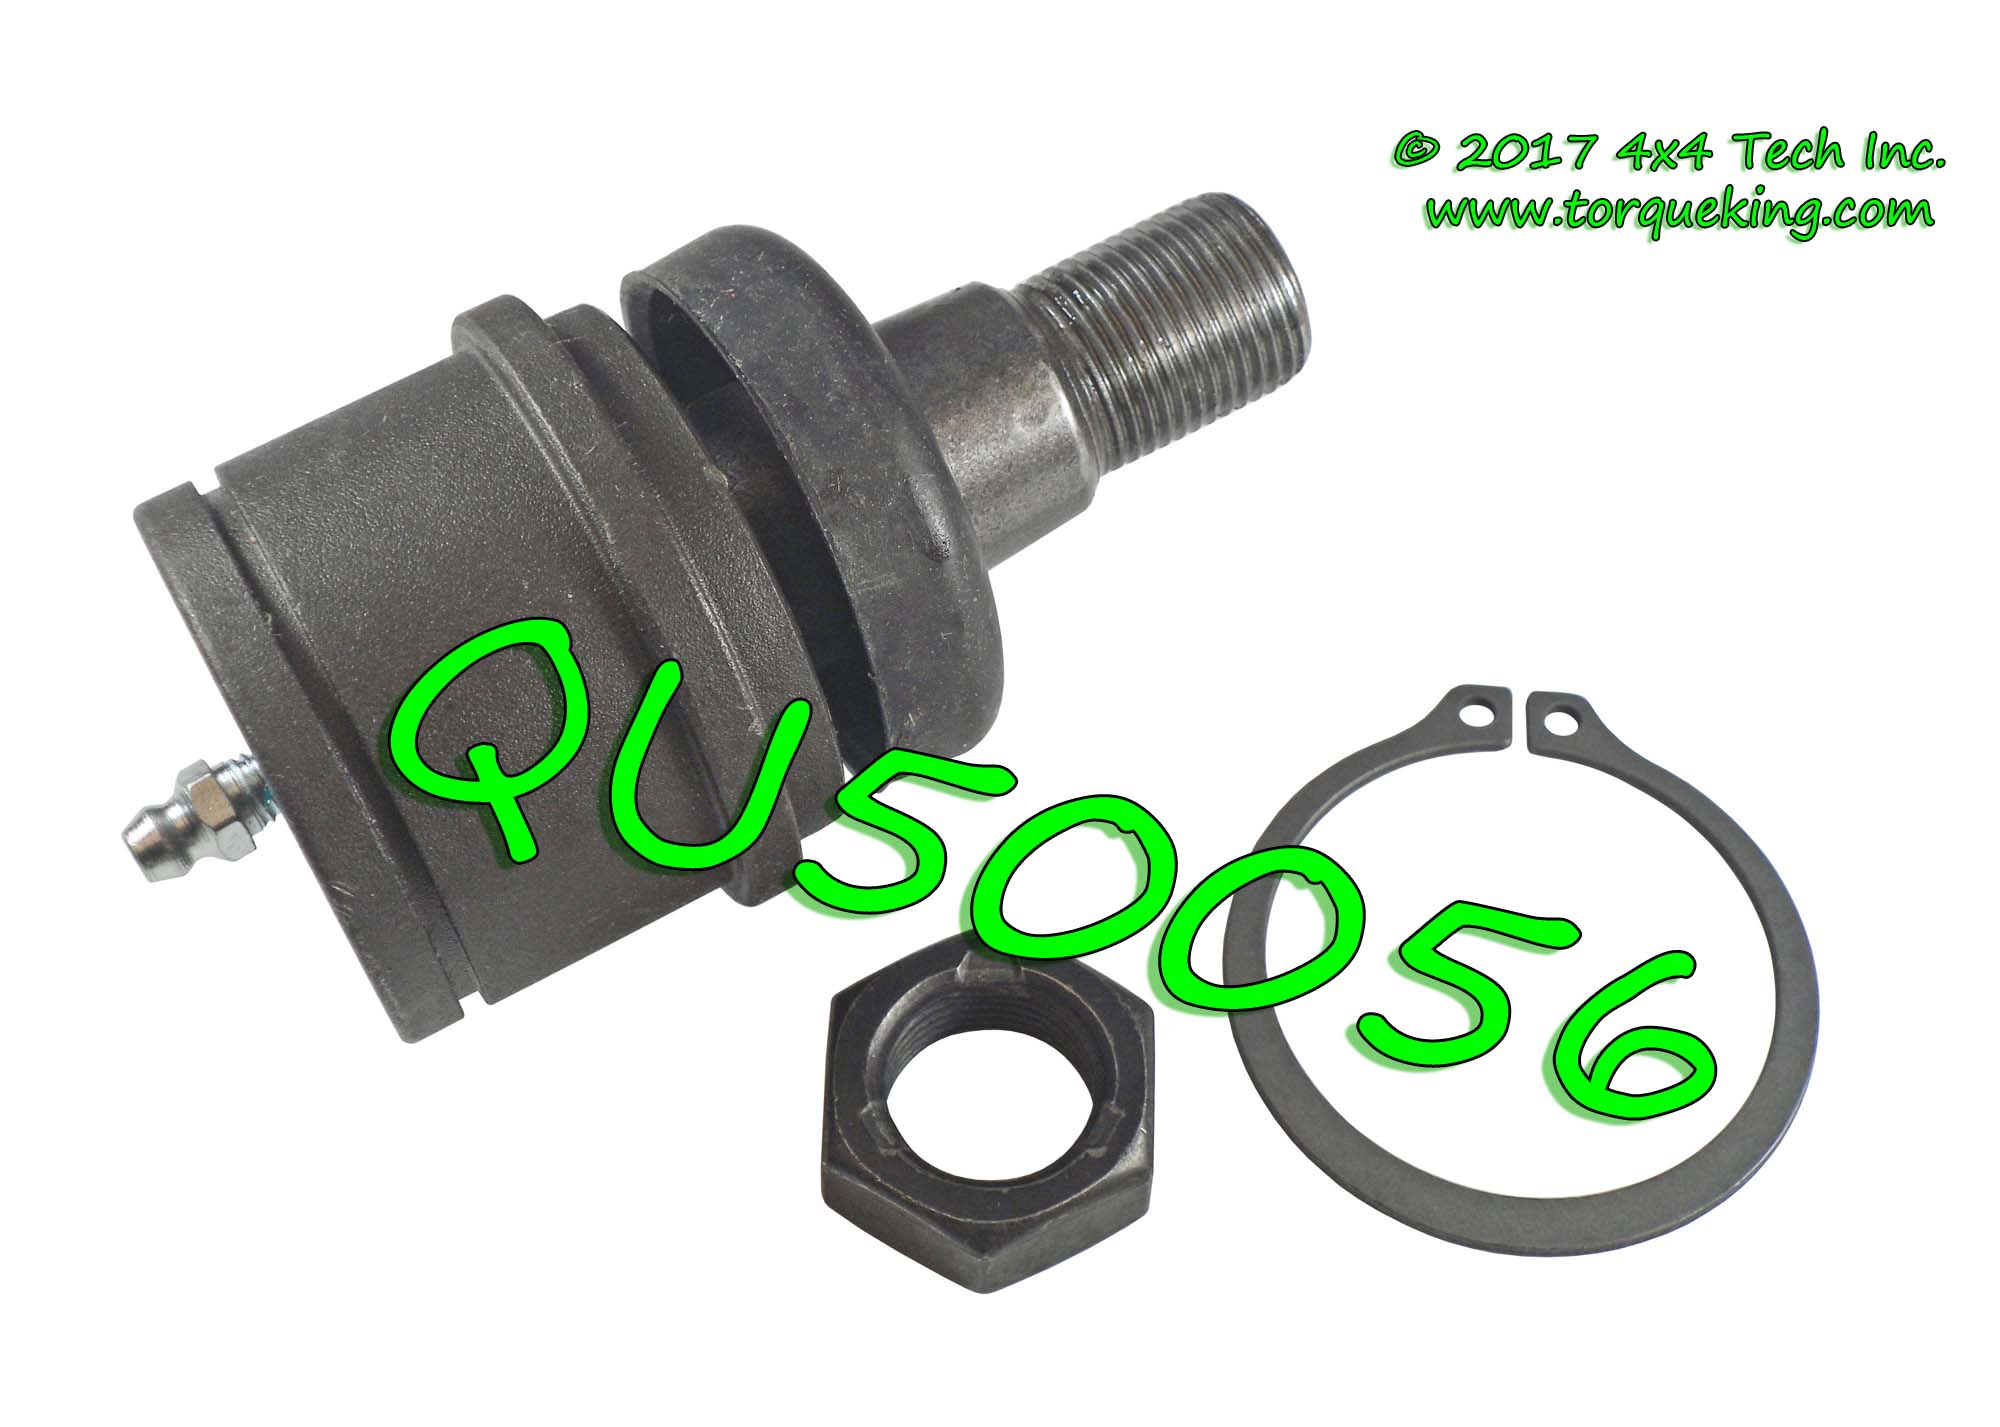 Ford50ifs1983 1997 Torque King 4x4 1995 Ford E350 Steering Column Diagram Qu50056 Premium Greaseable Lower Ball Joint With Hardware For 1983 Dana 50 Ifs Front Axles